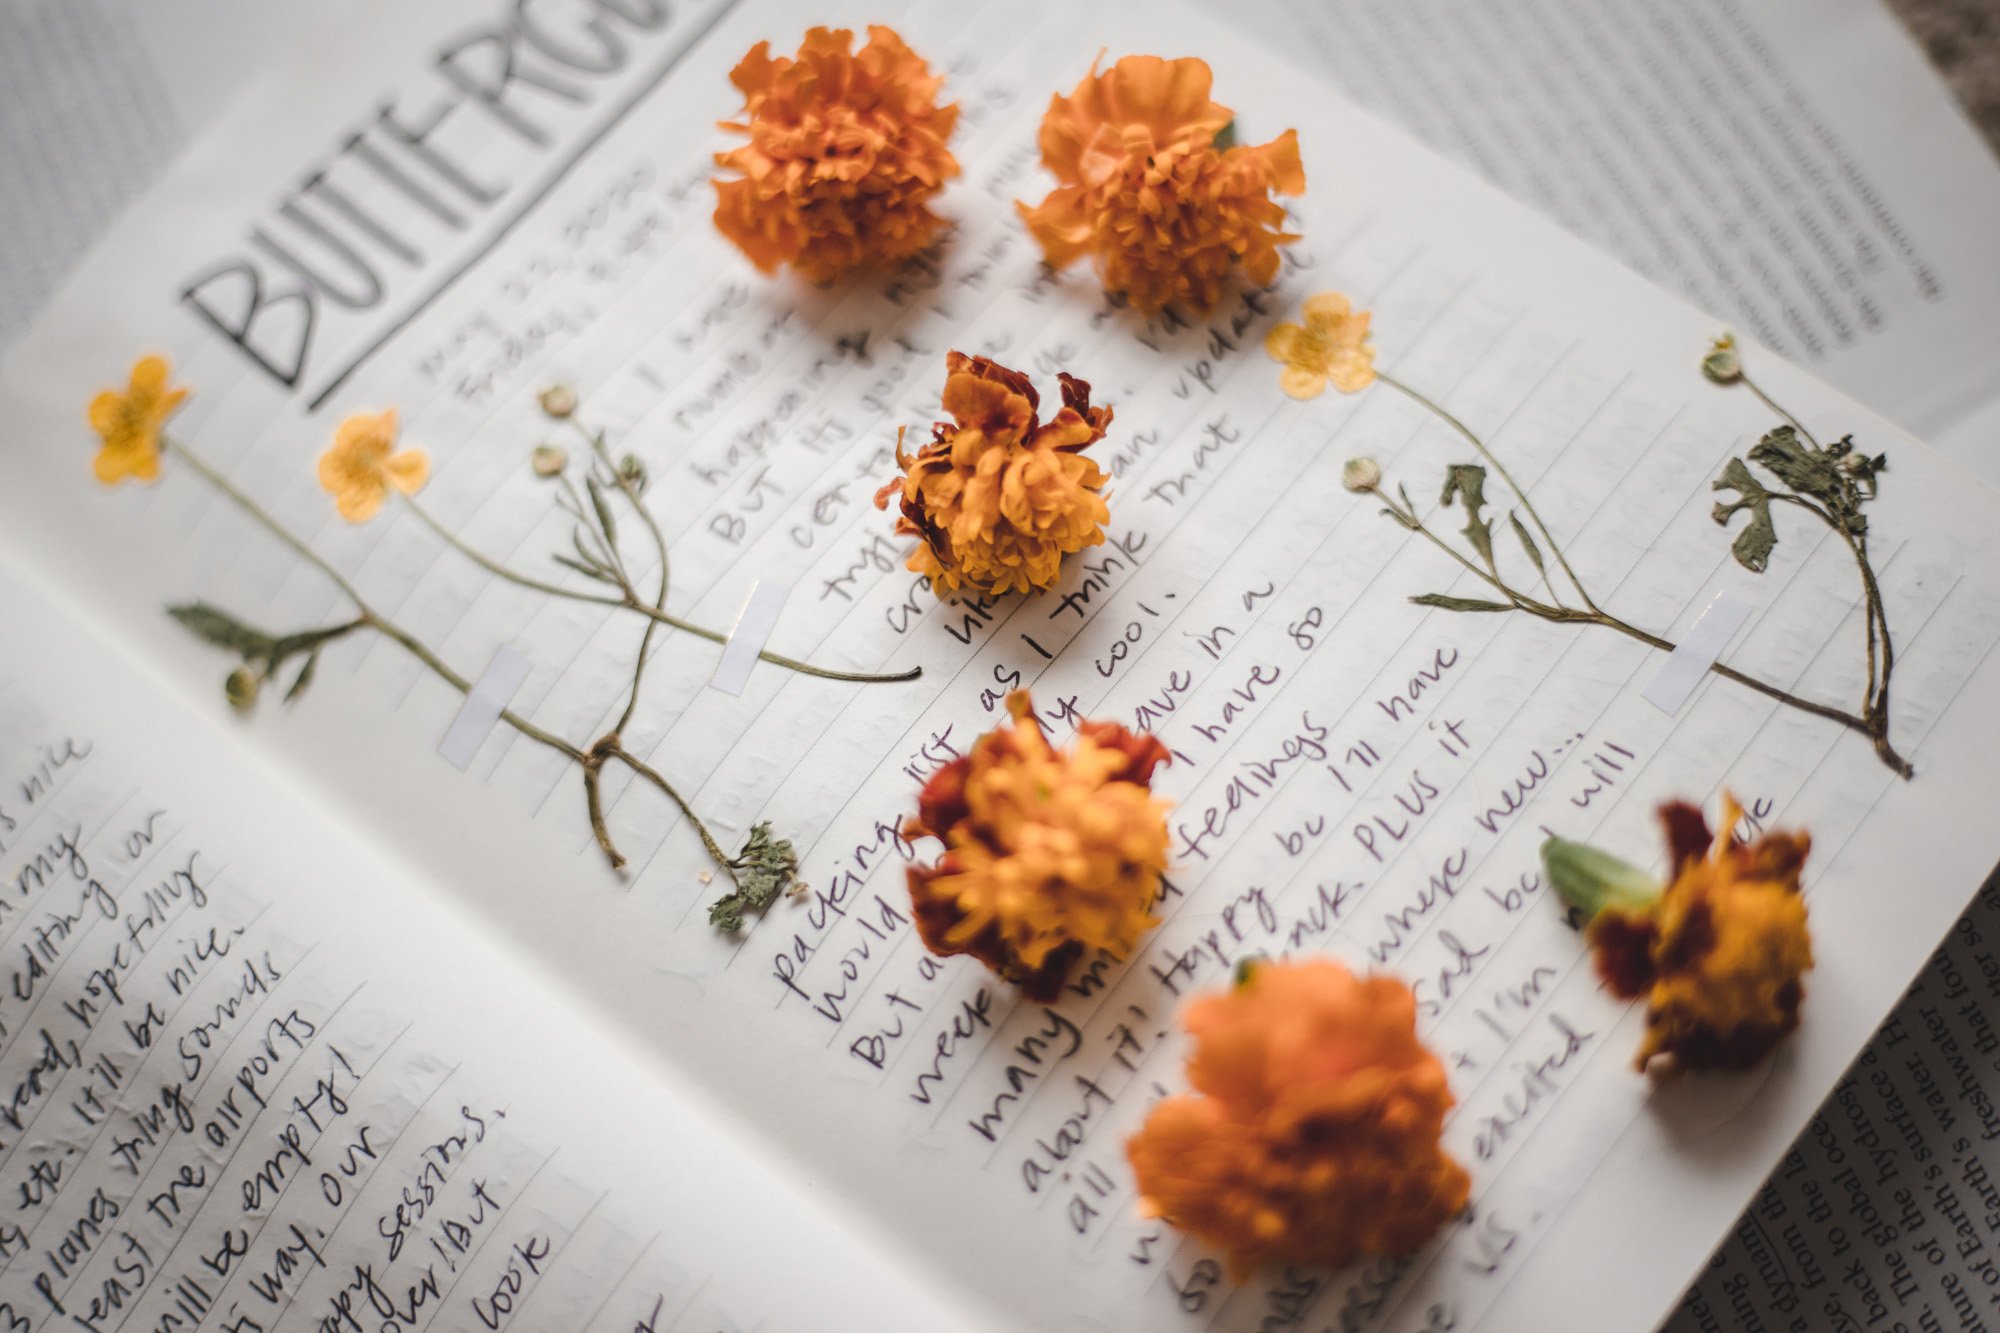 Pressed yellow buttercup flowers with orange marigold flowers on top of written words